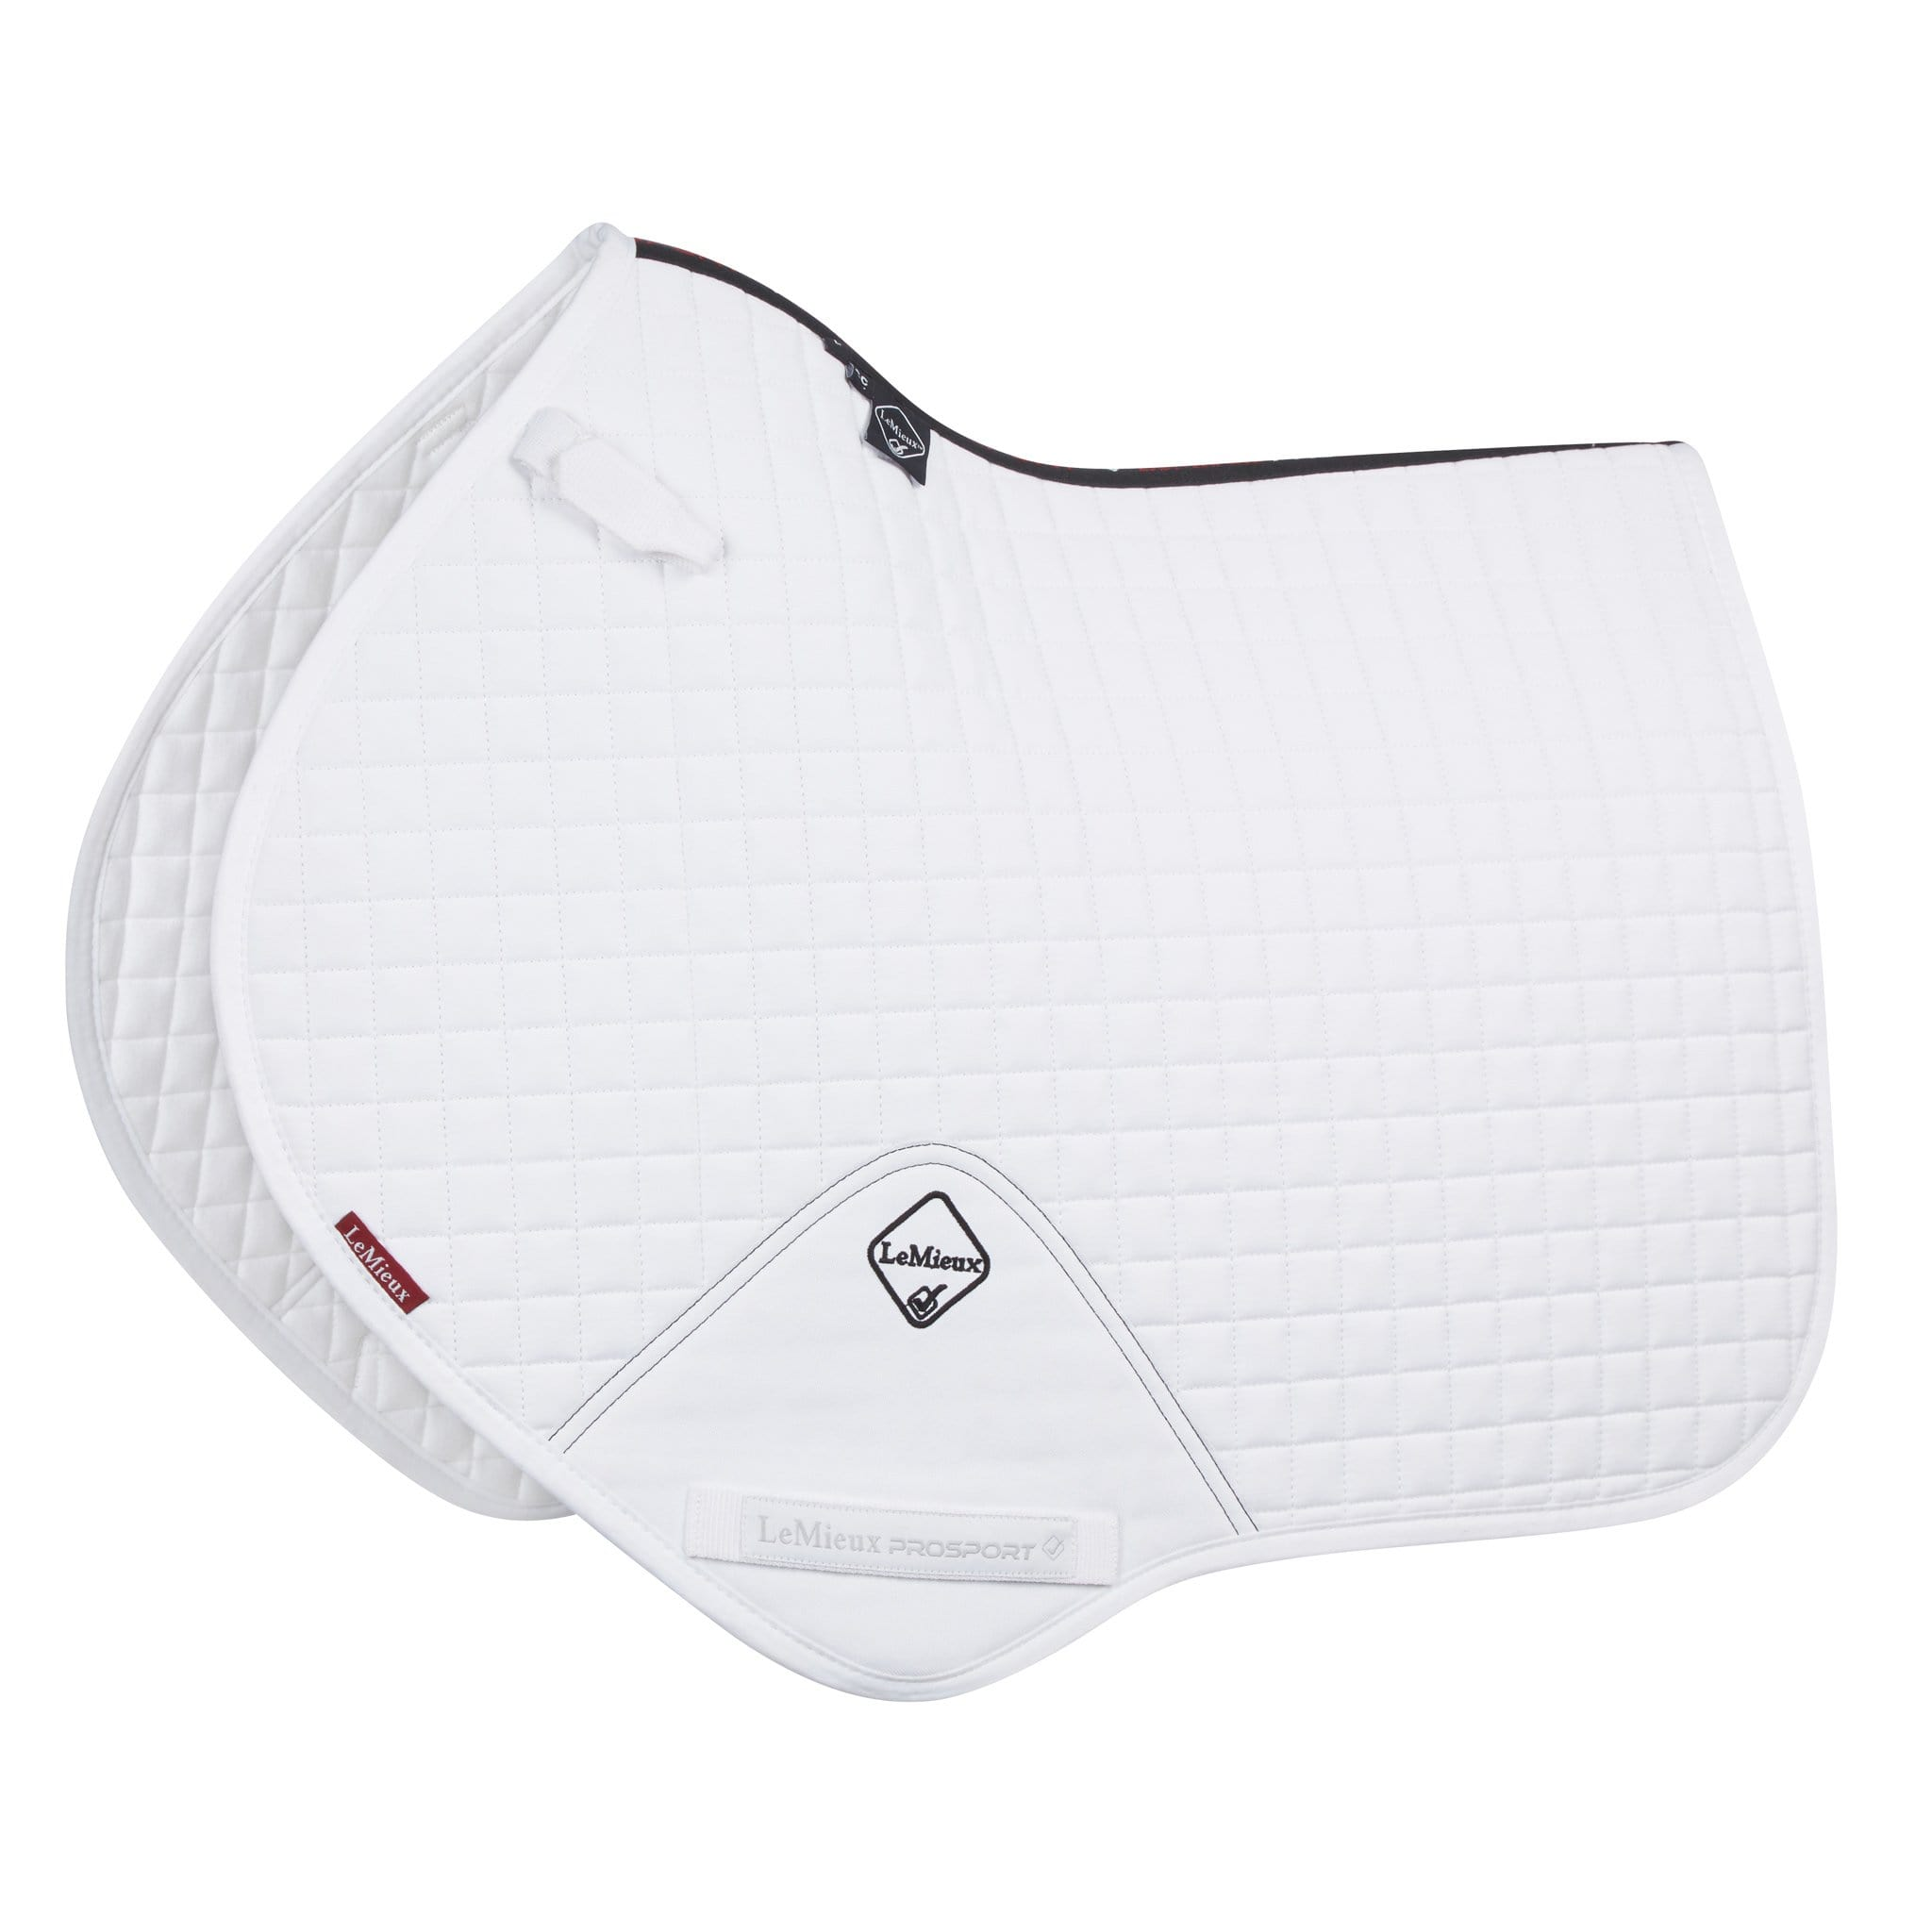 LeMieux ProSport Close Contact Square White 8915